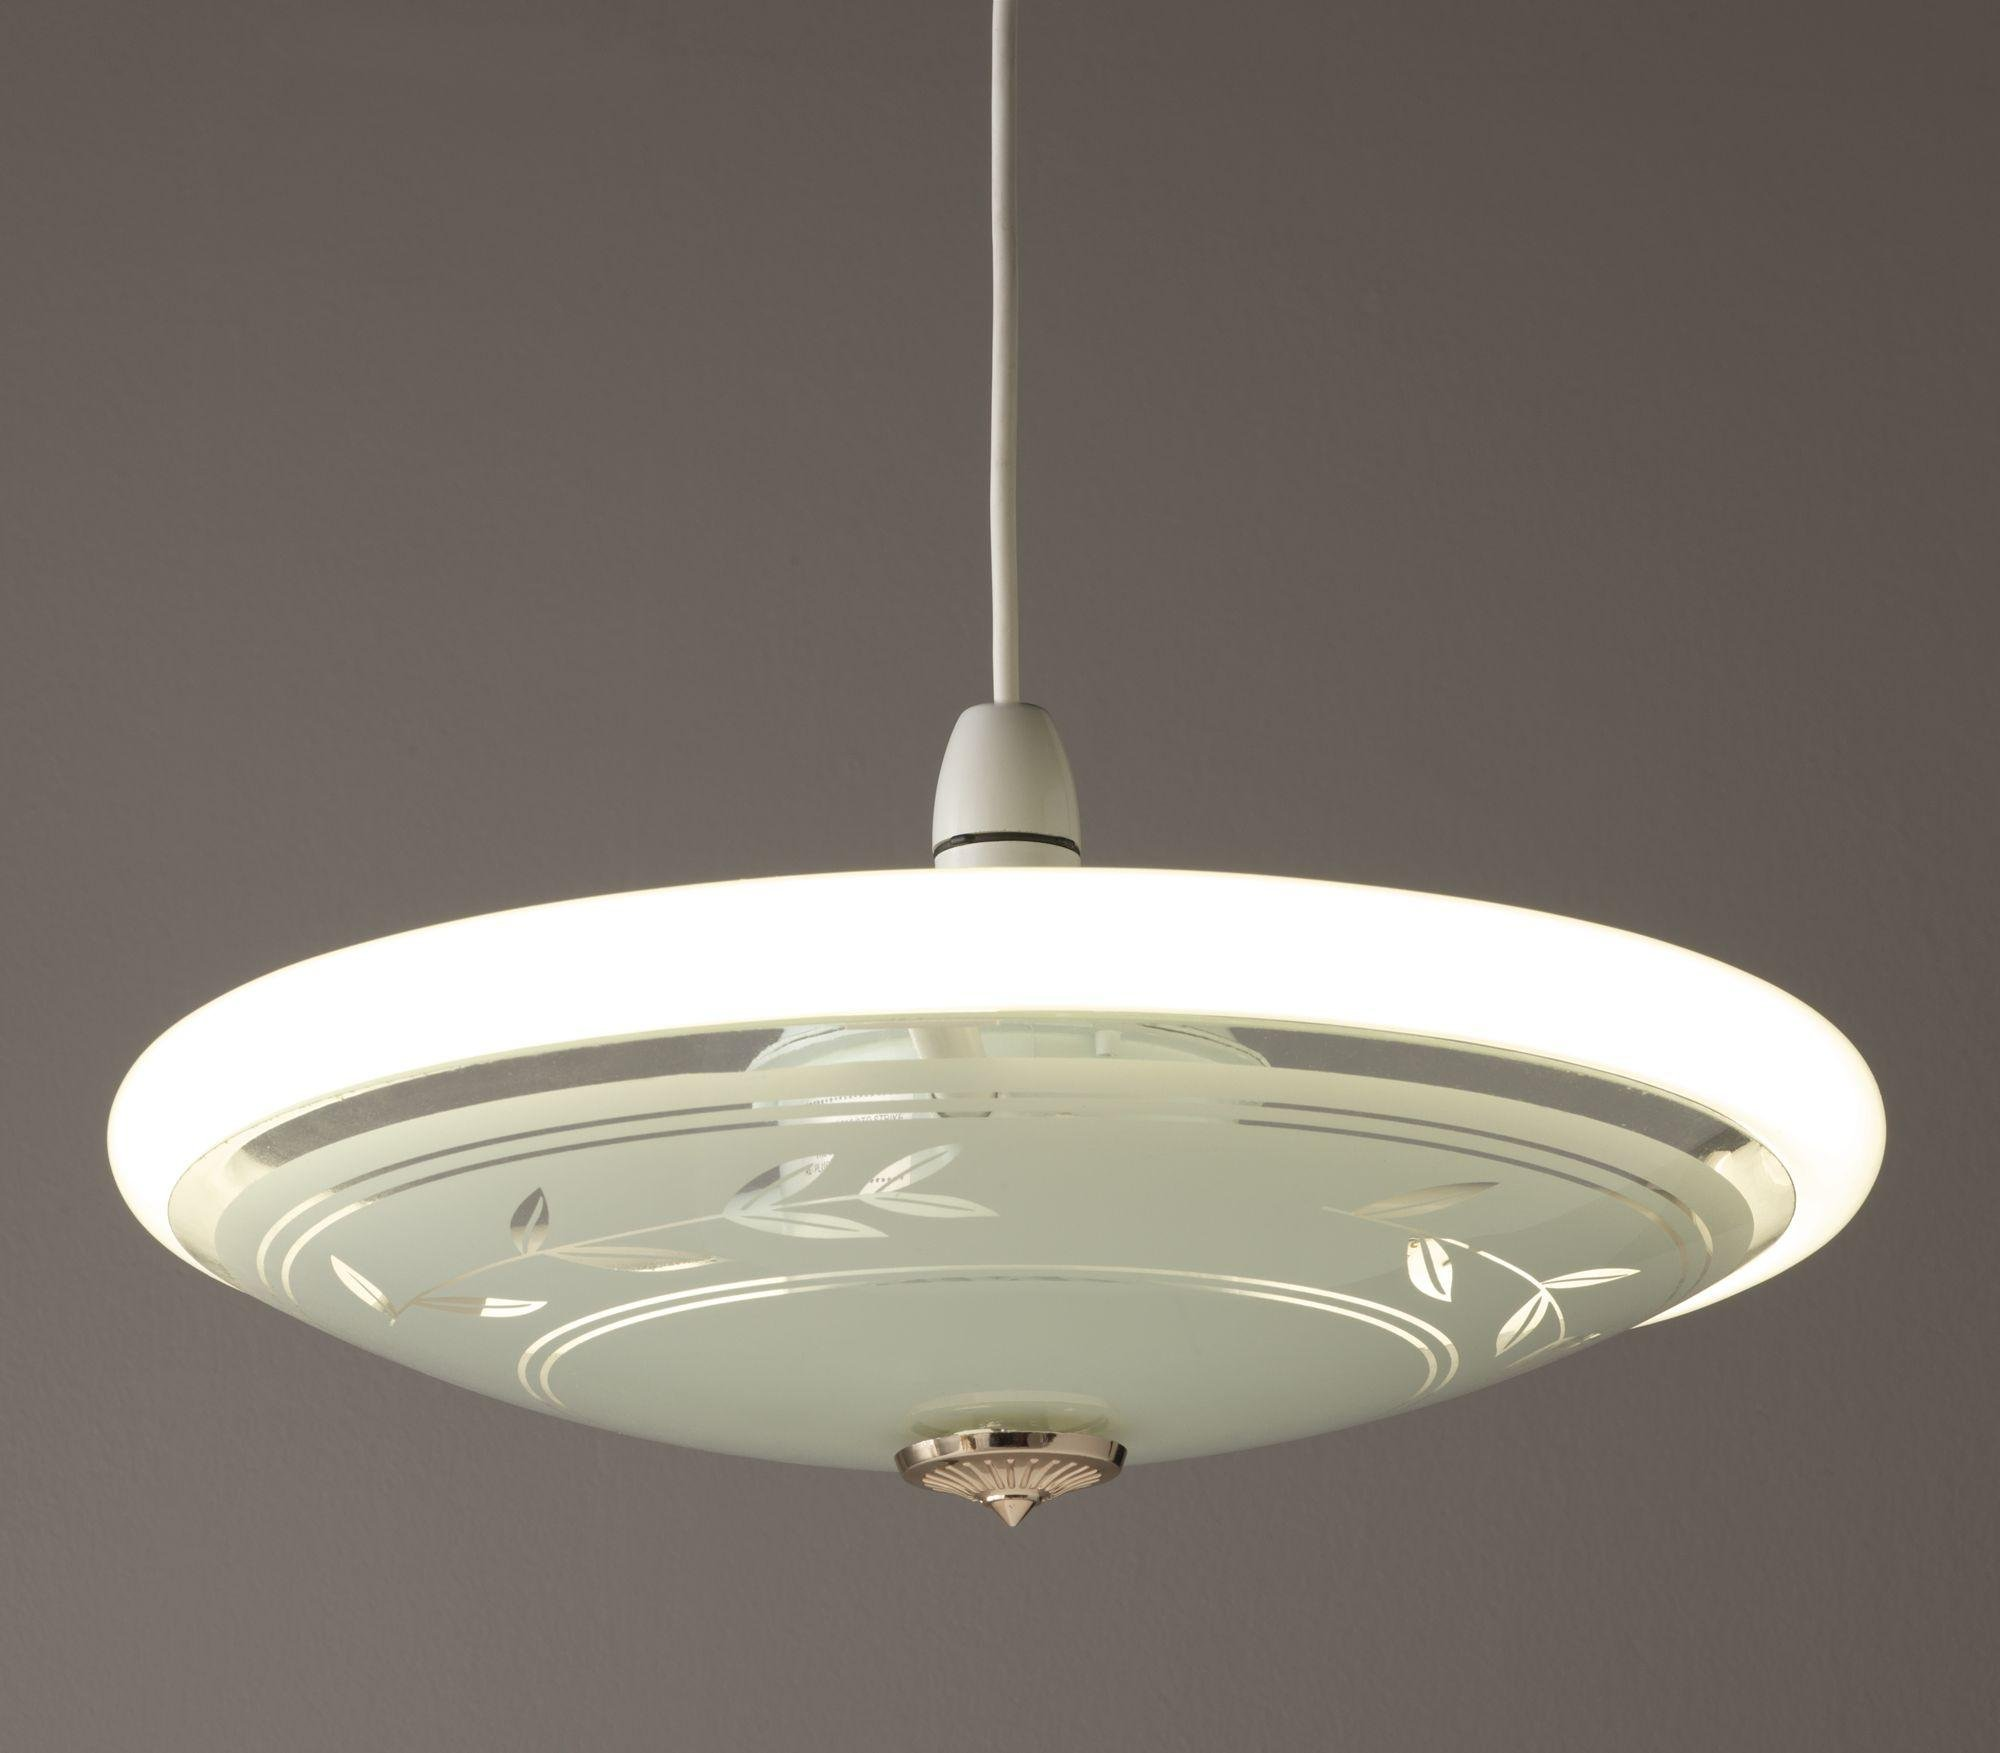 HOME Circular Fluorescent Etch Flush Ceiling Fitting-Frosted901/9377